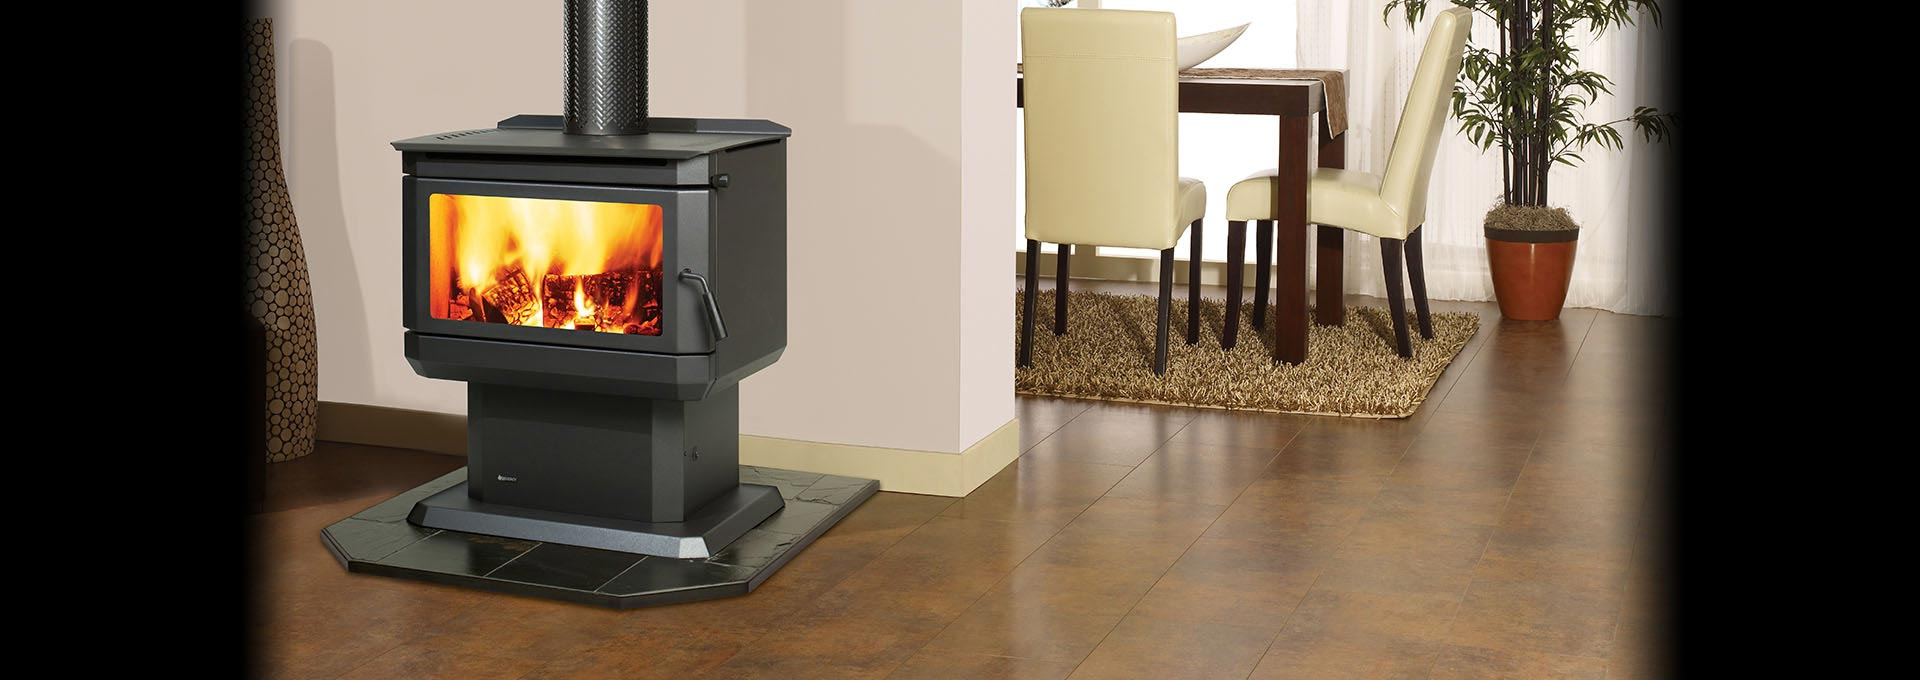 uniq standing product stove freestanding westfire stoves home fireplace wood burning cc fireplaces free